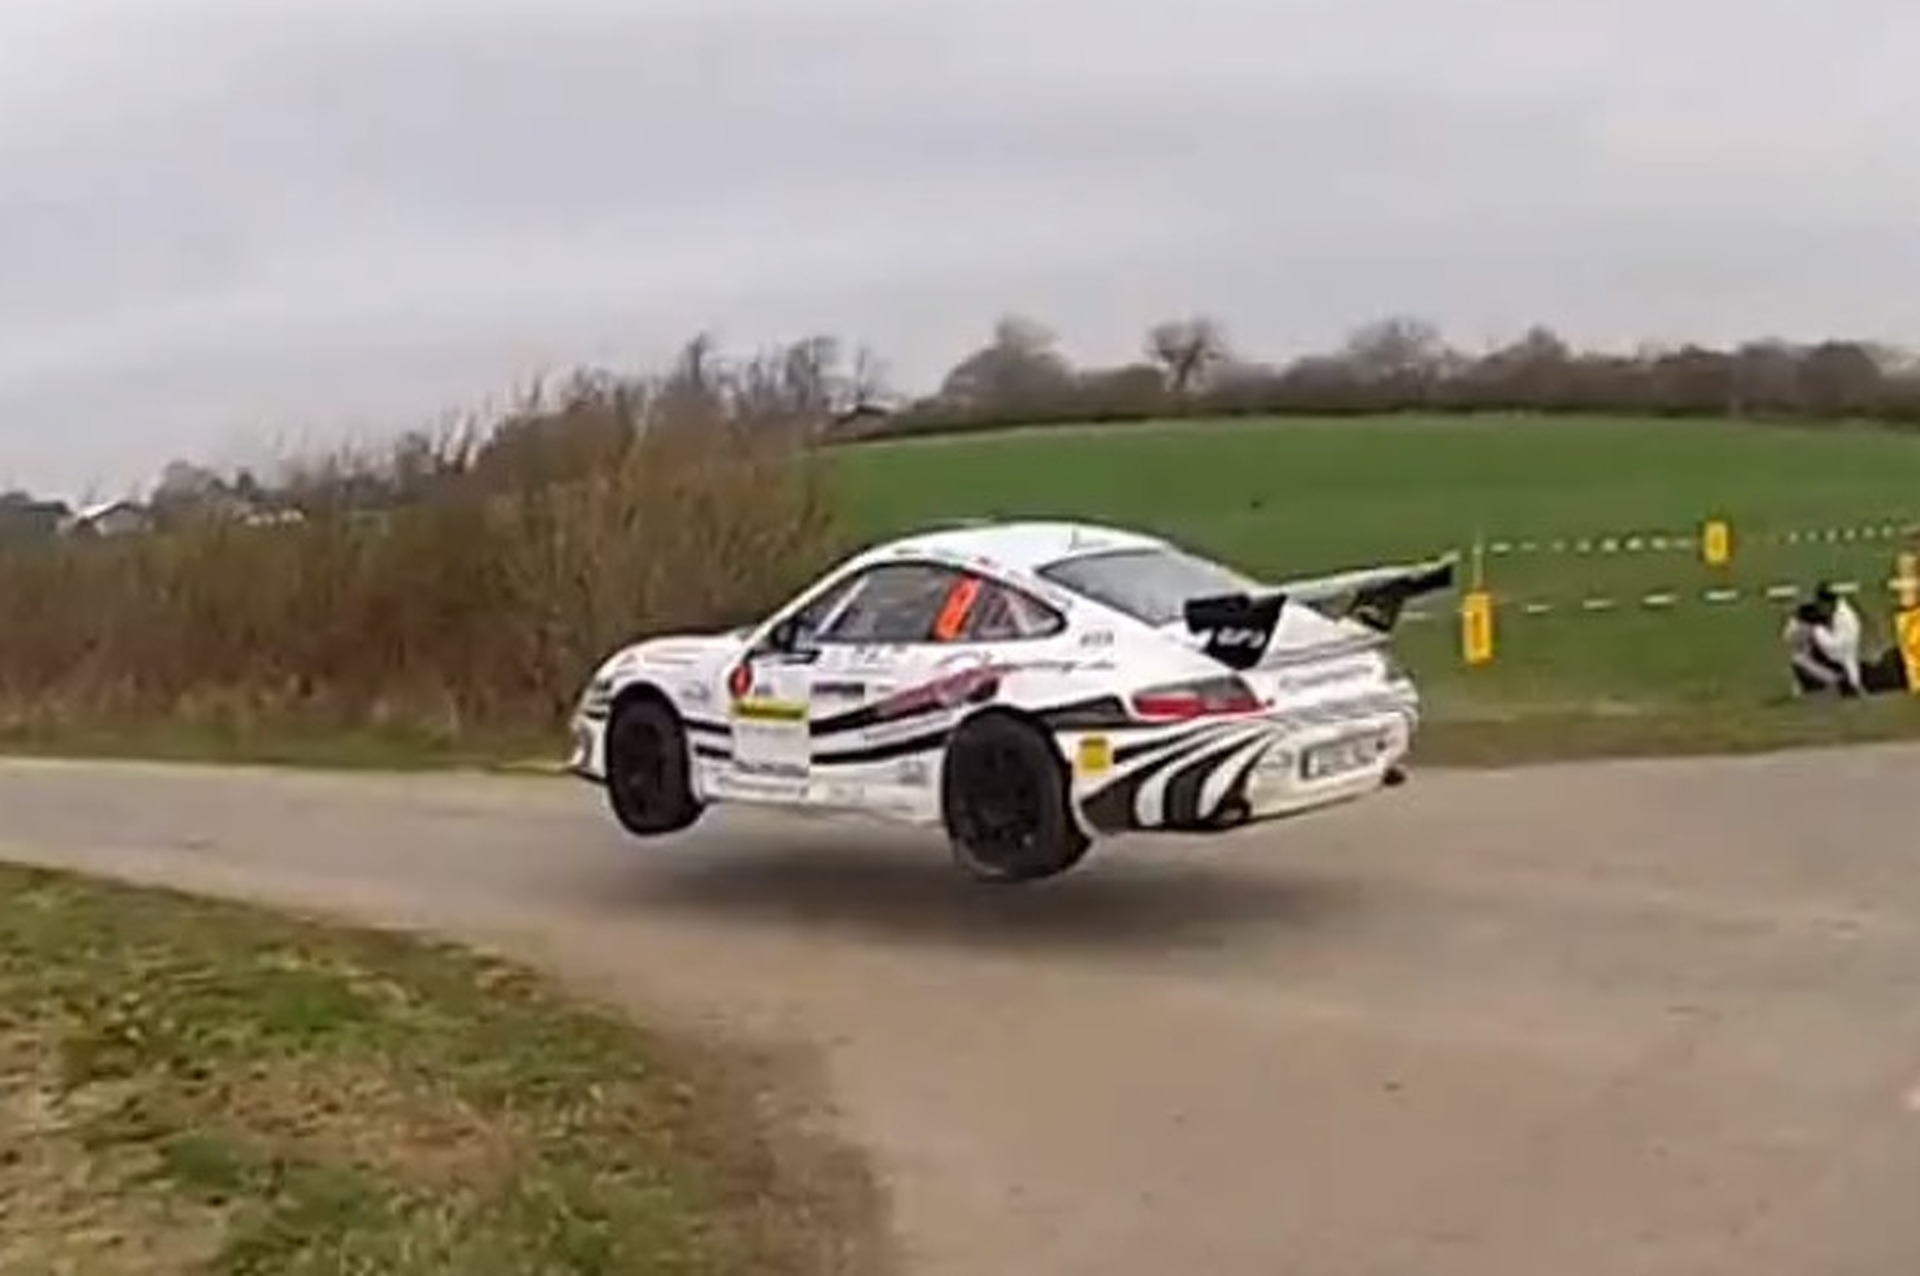 Porsche 911 Rally Car Catching Some Serious Air